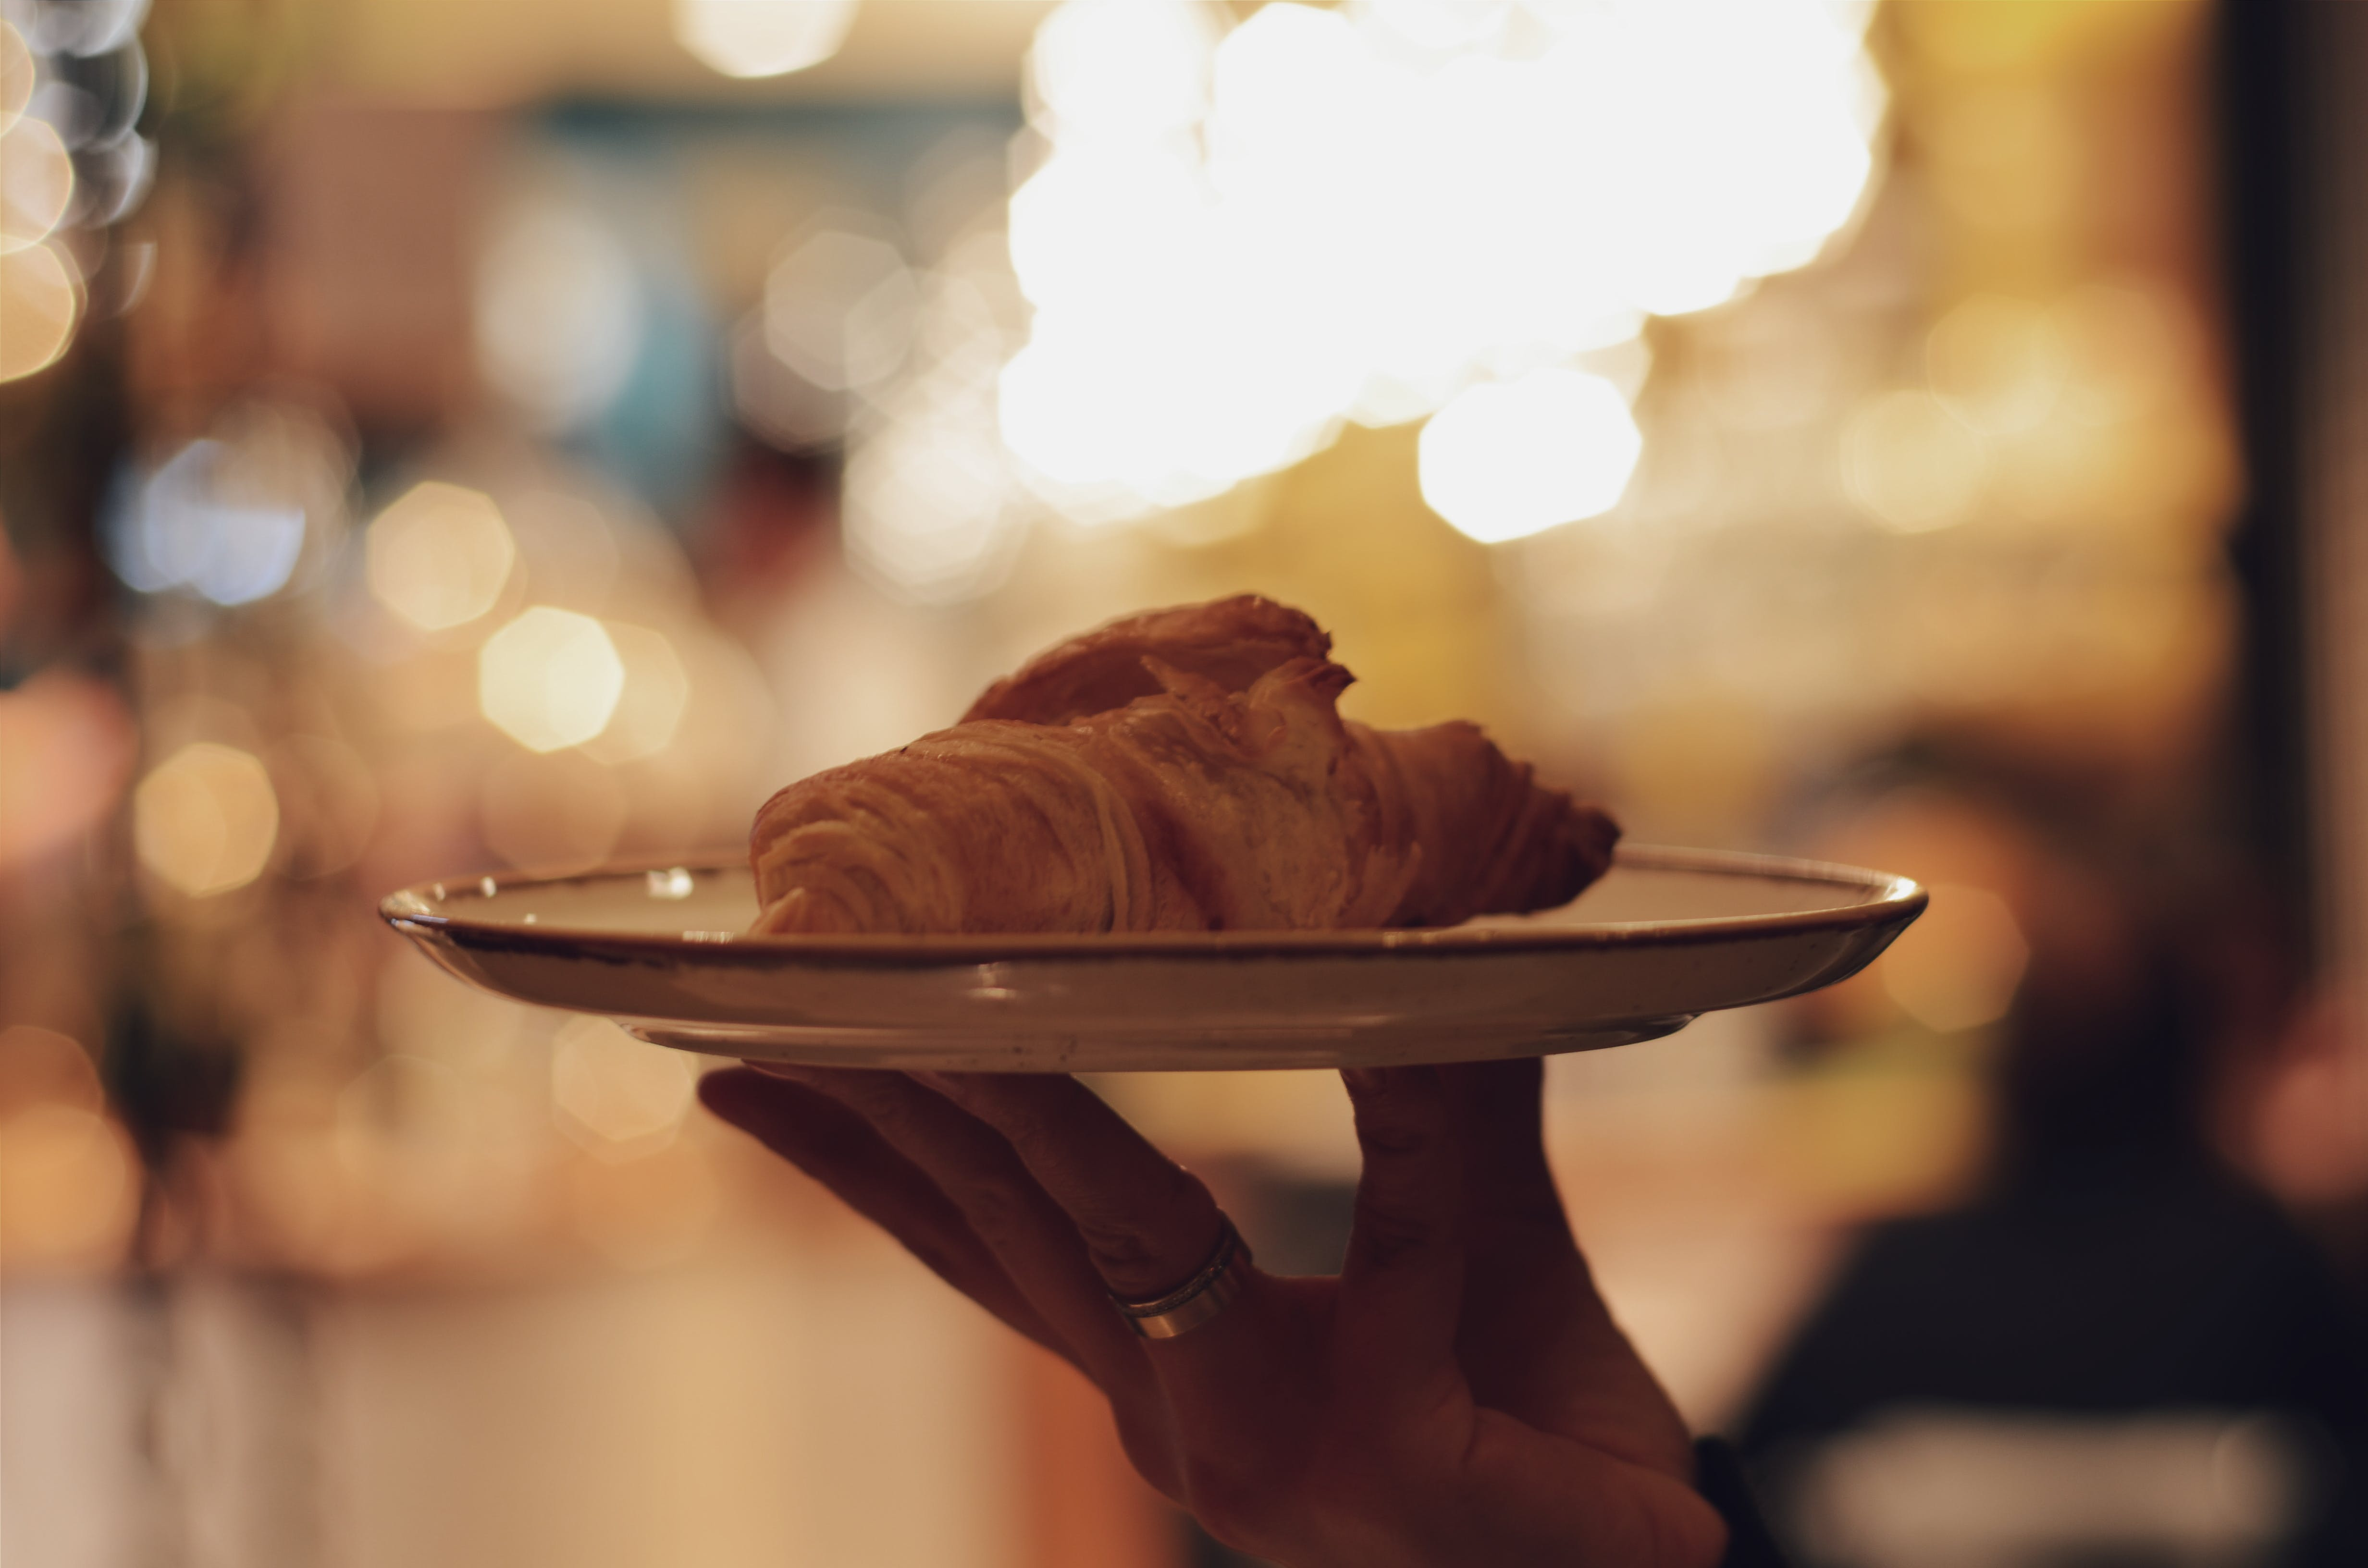 Person Holding Plate of Pastry